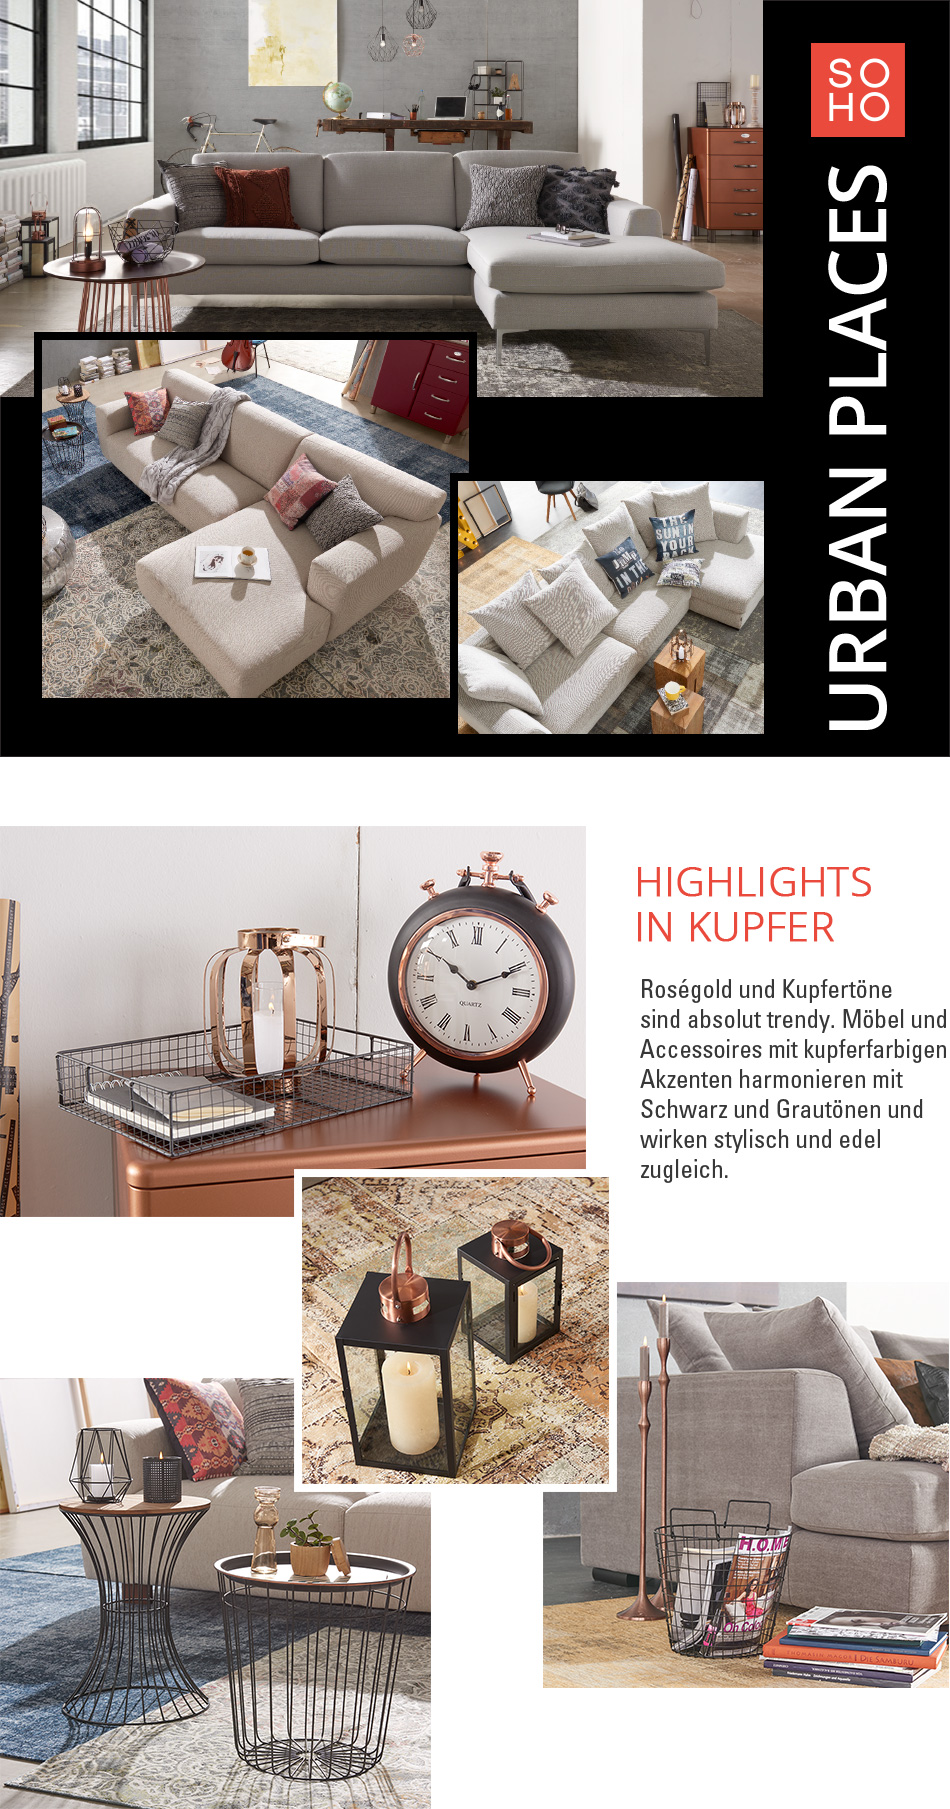 eXpress Katalog - Urban Places mit SOHO | Möbel Höffner